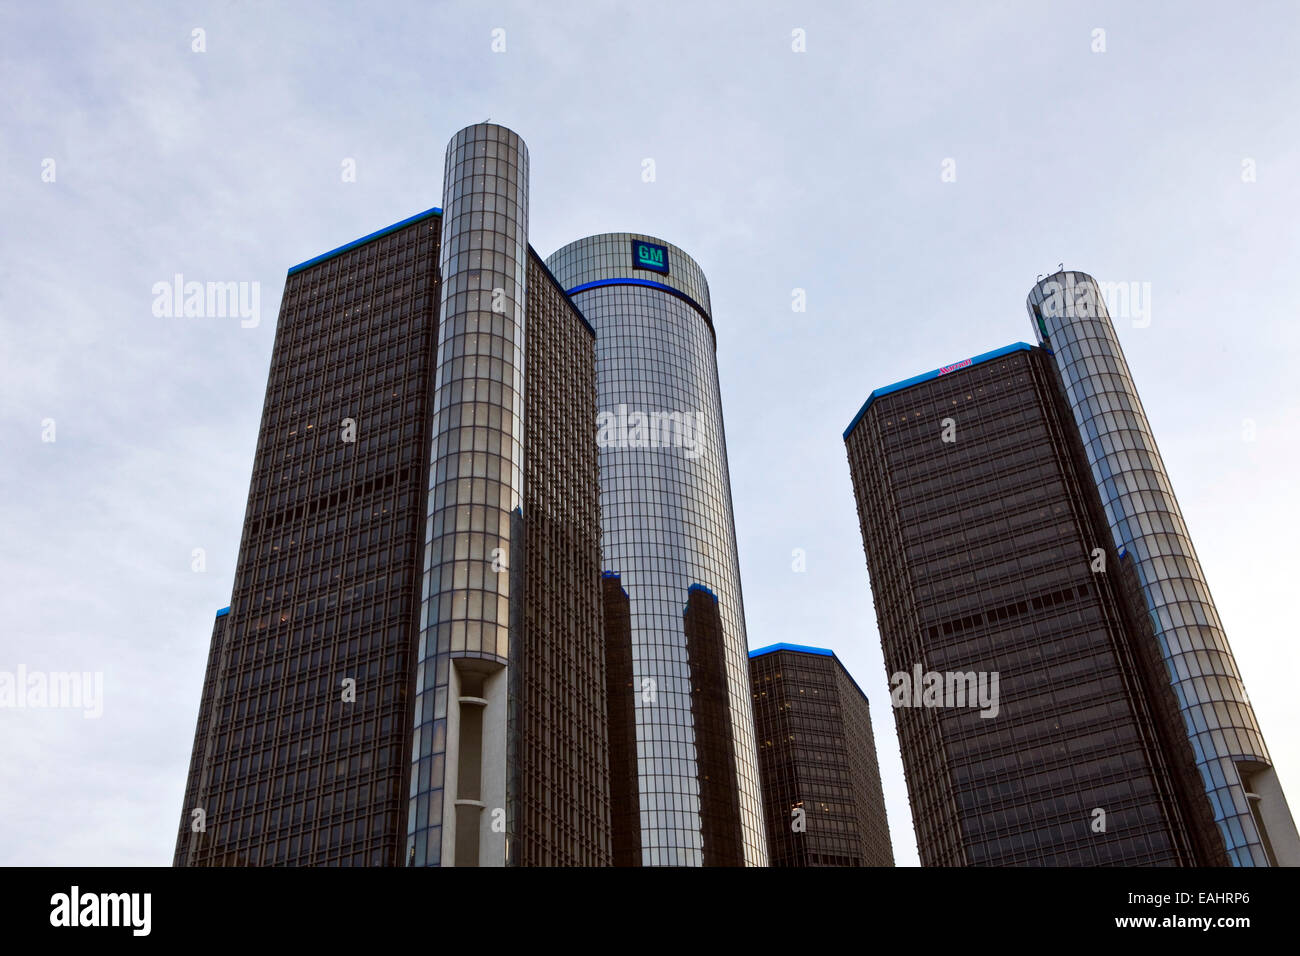 A view of the General Motors headquarters in downtown Detroit. Stock Photo